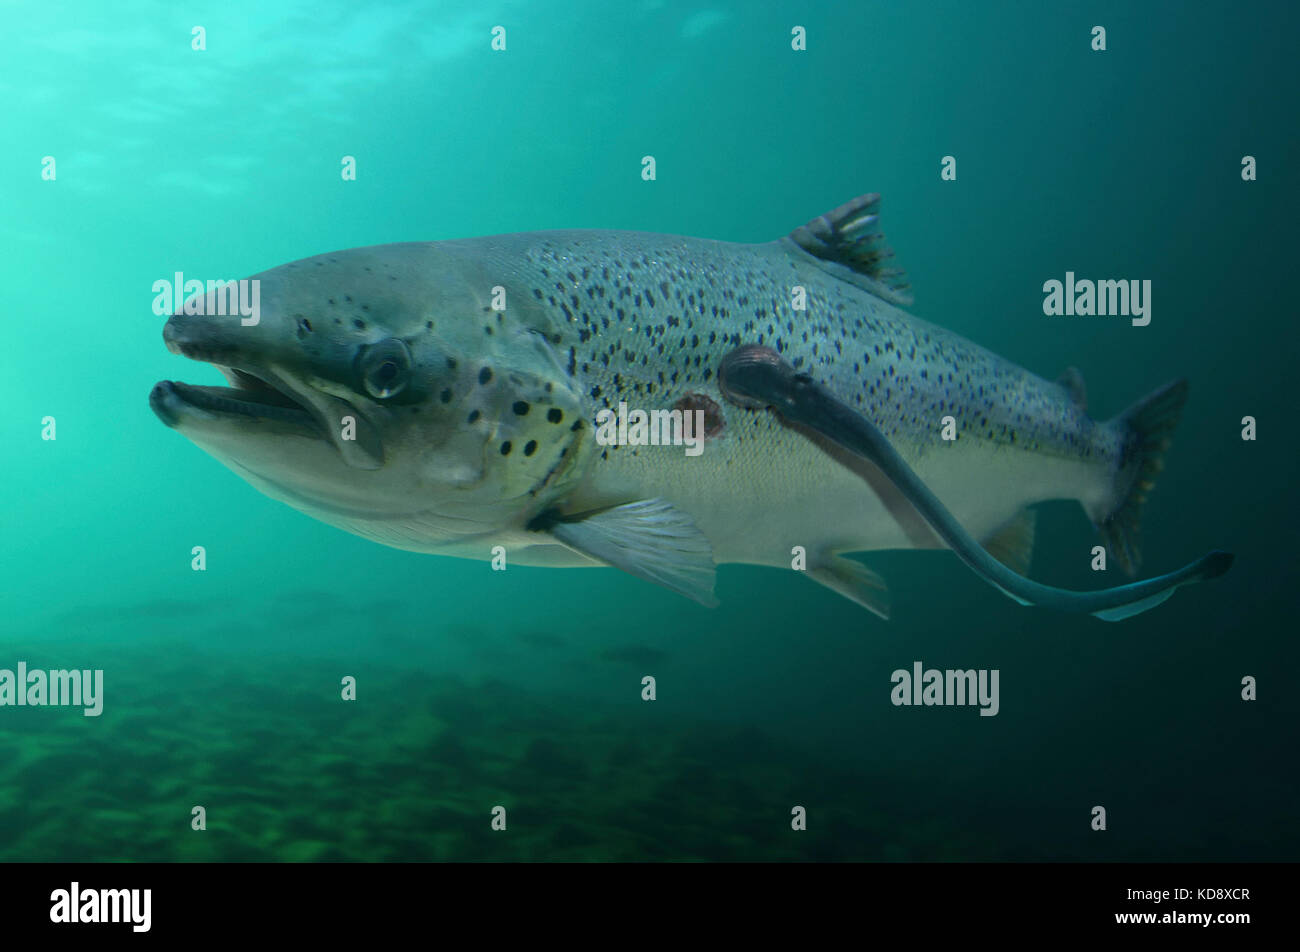 Young Sea lamprey, Petromyzon marinus, parasitizing large Salmon, Salmo salar. Note other circular mark of lamprey - Stock Image